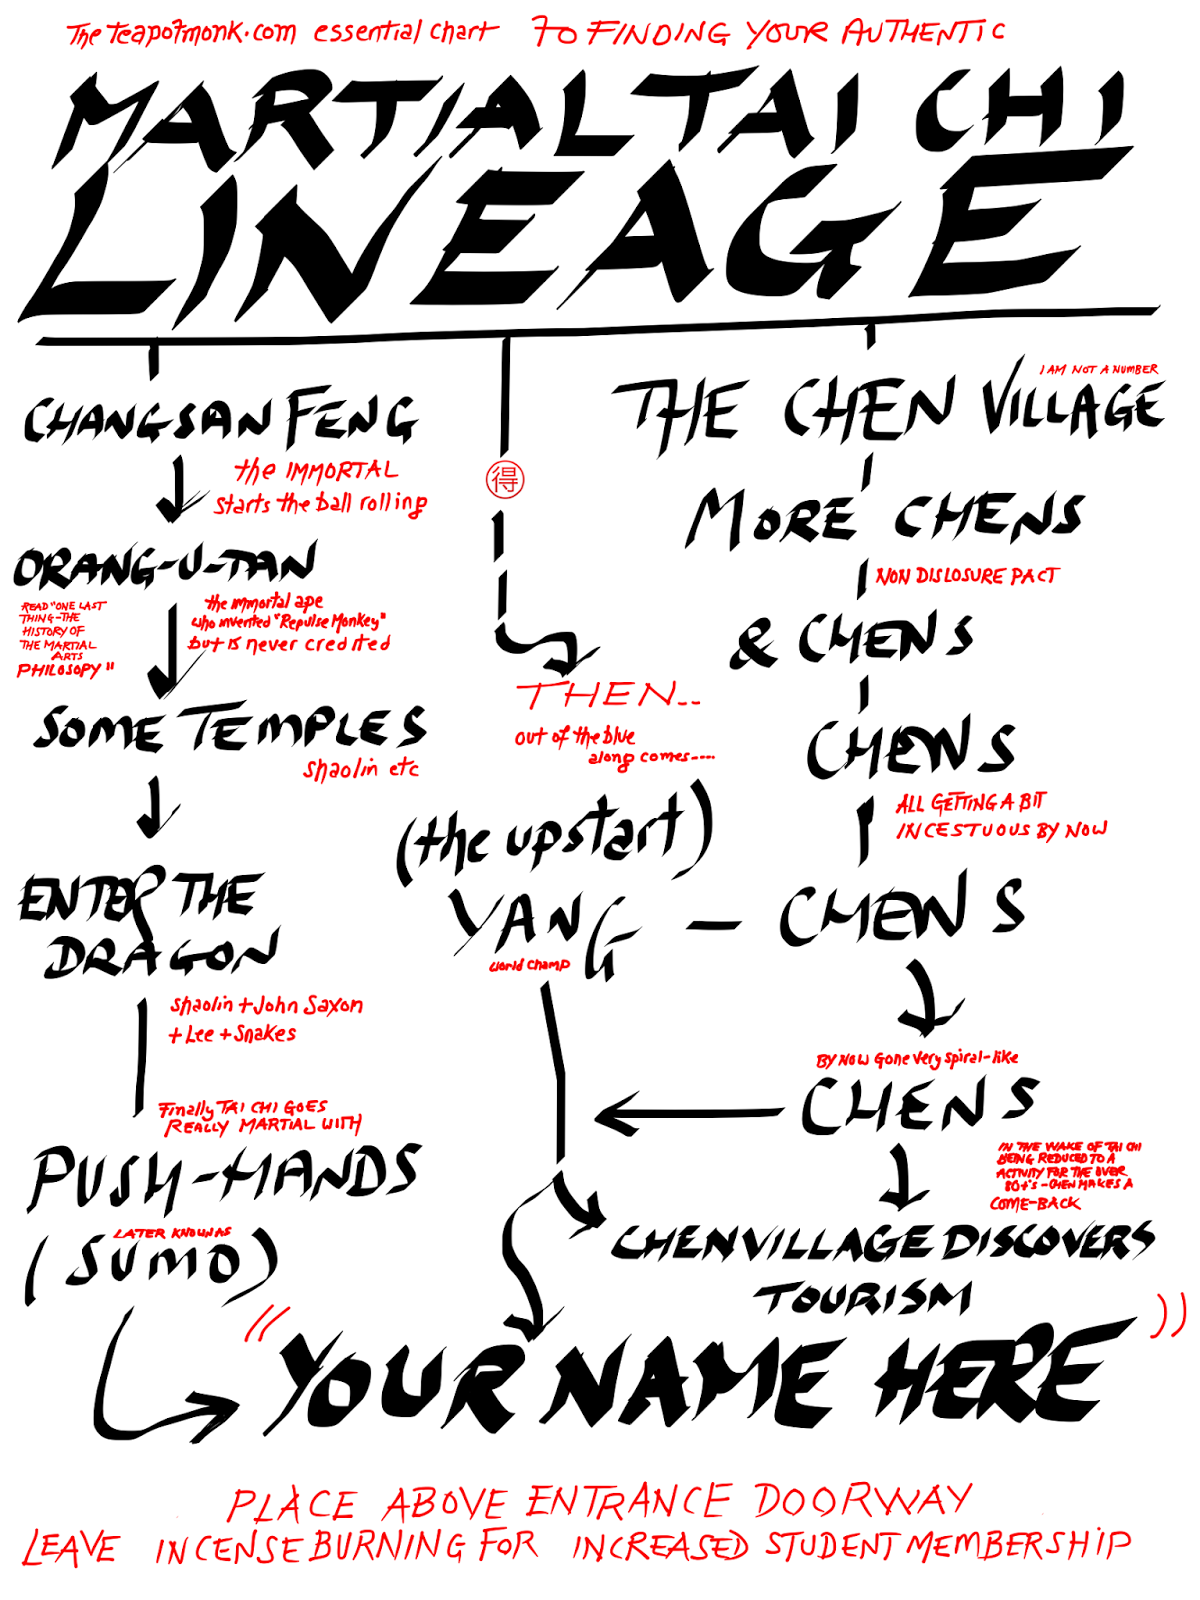 The Teapotmonk Tai CHi Martial Art Lineage Chart